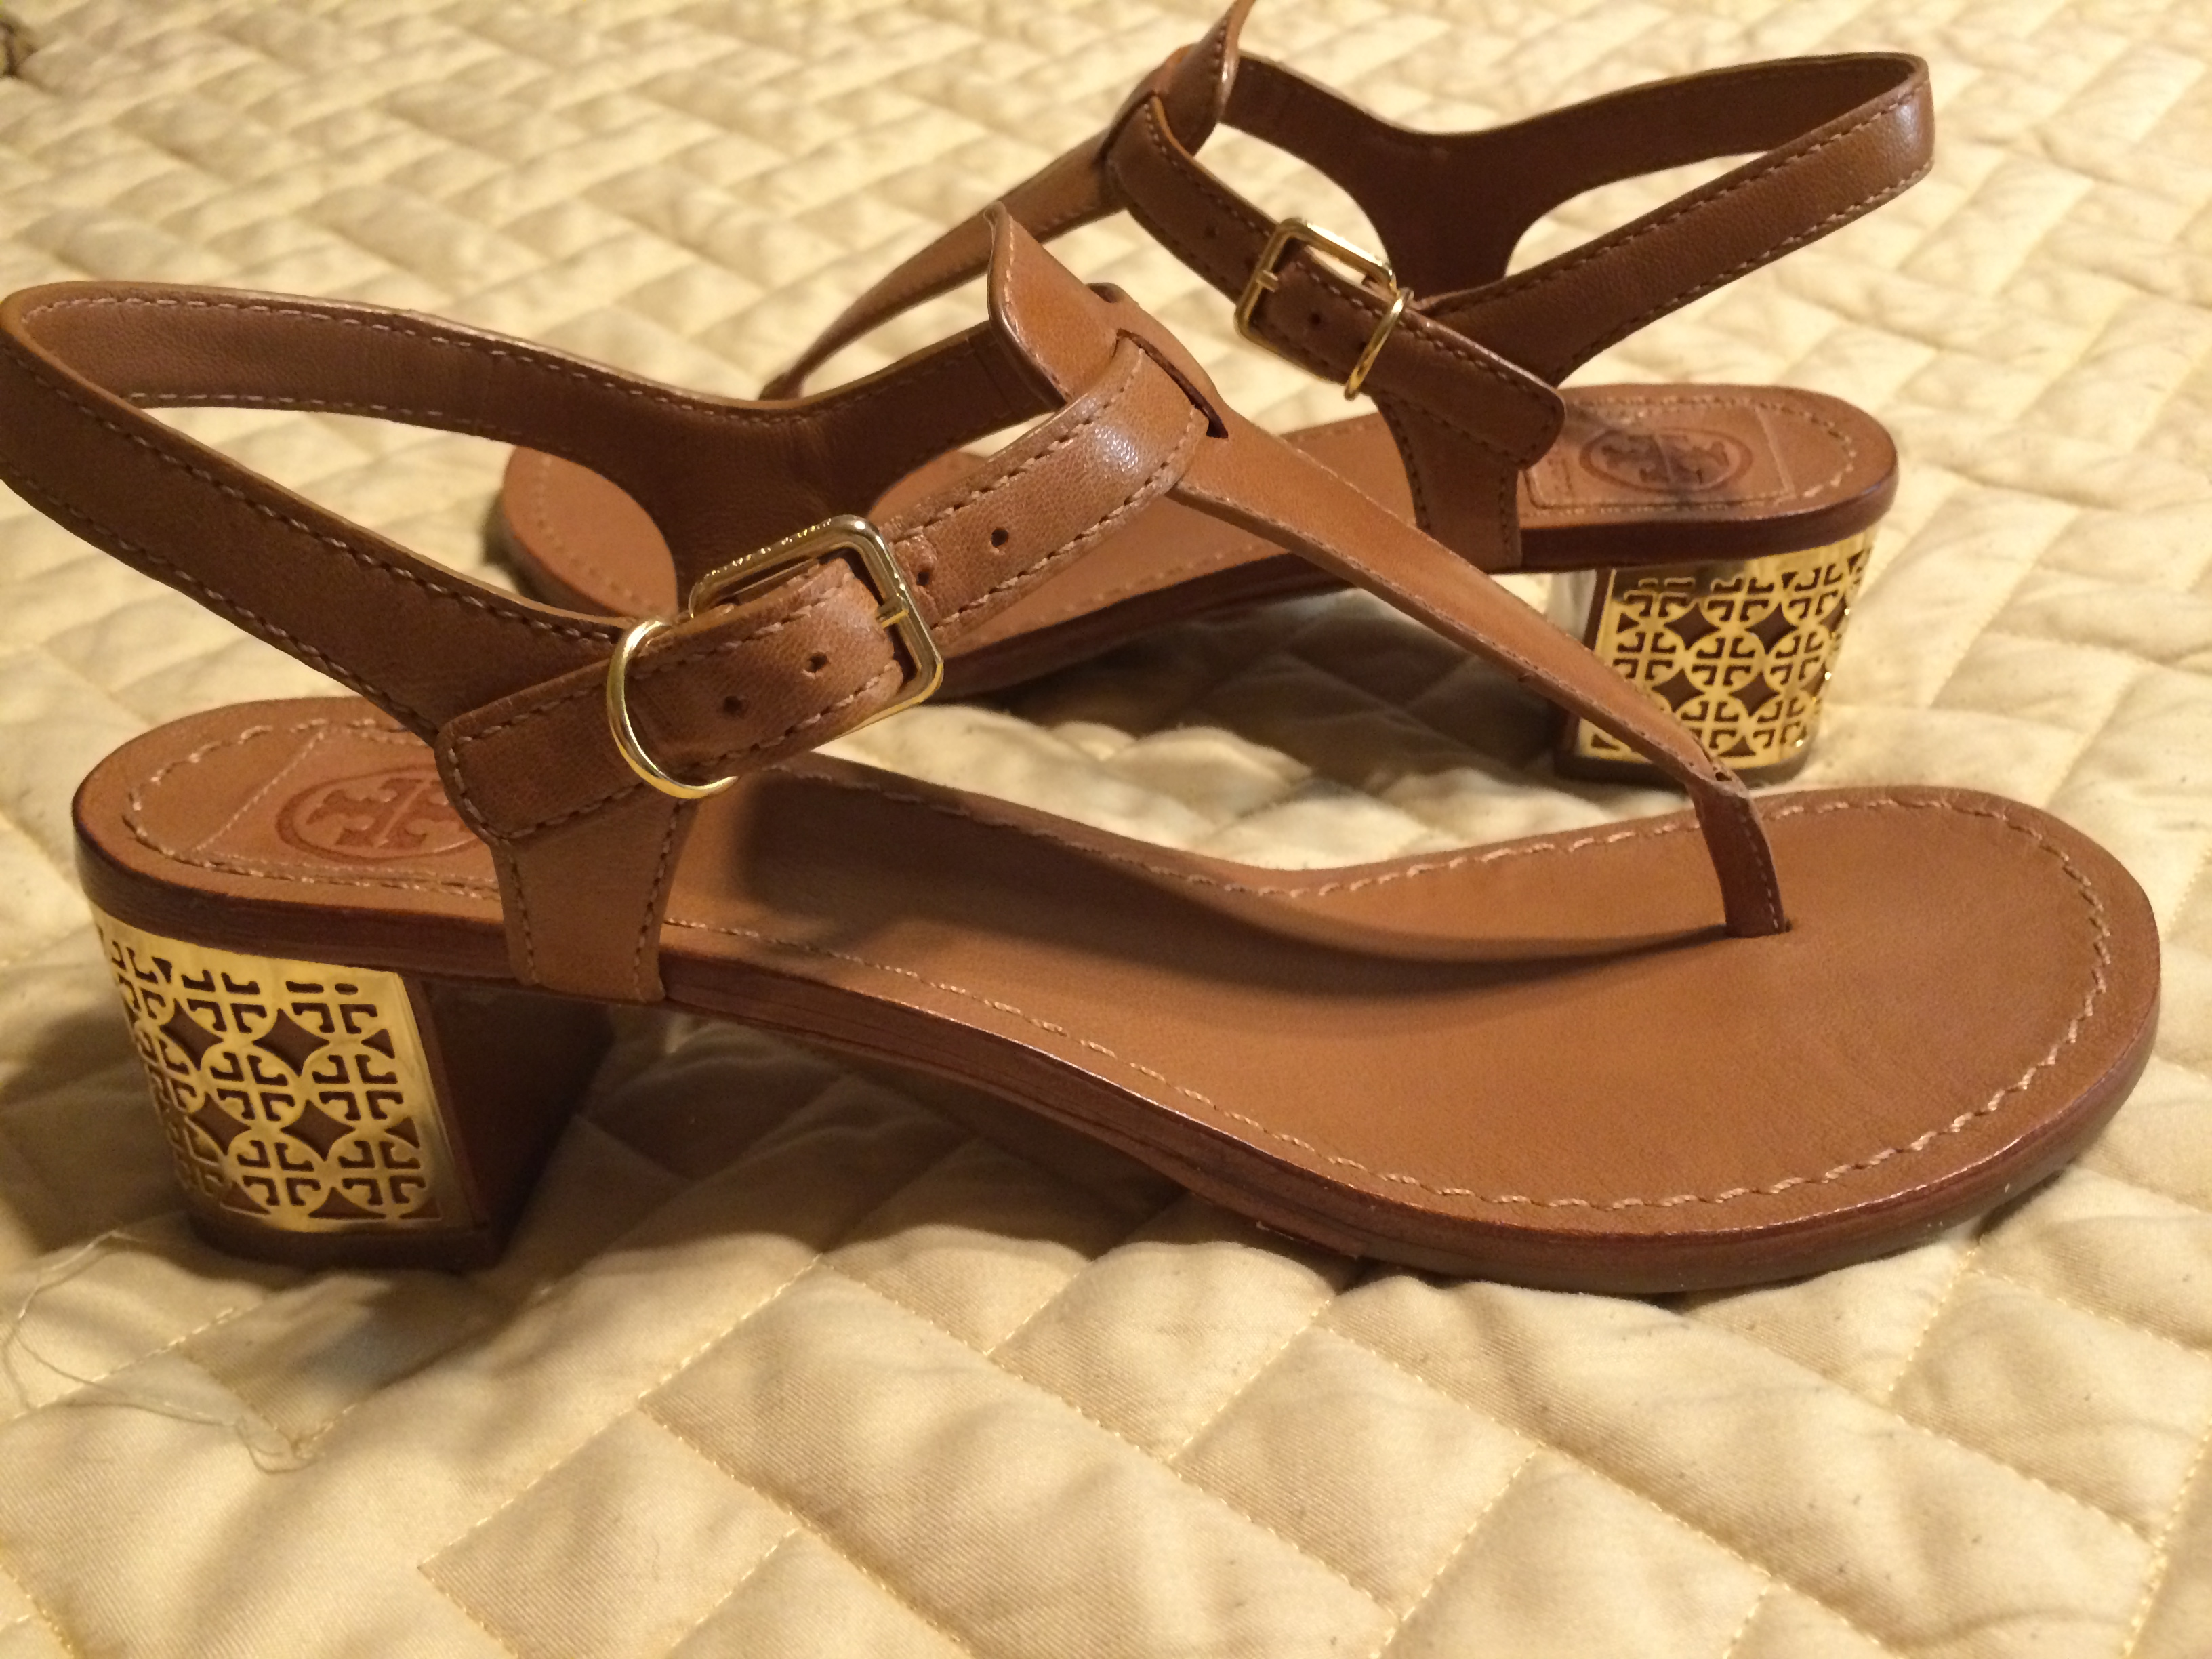 tory burch sandals are my january splurge. Black Bedroom Furniture Sets. Home Design Ideas